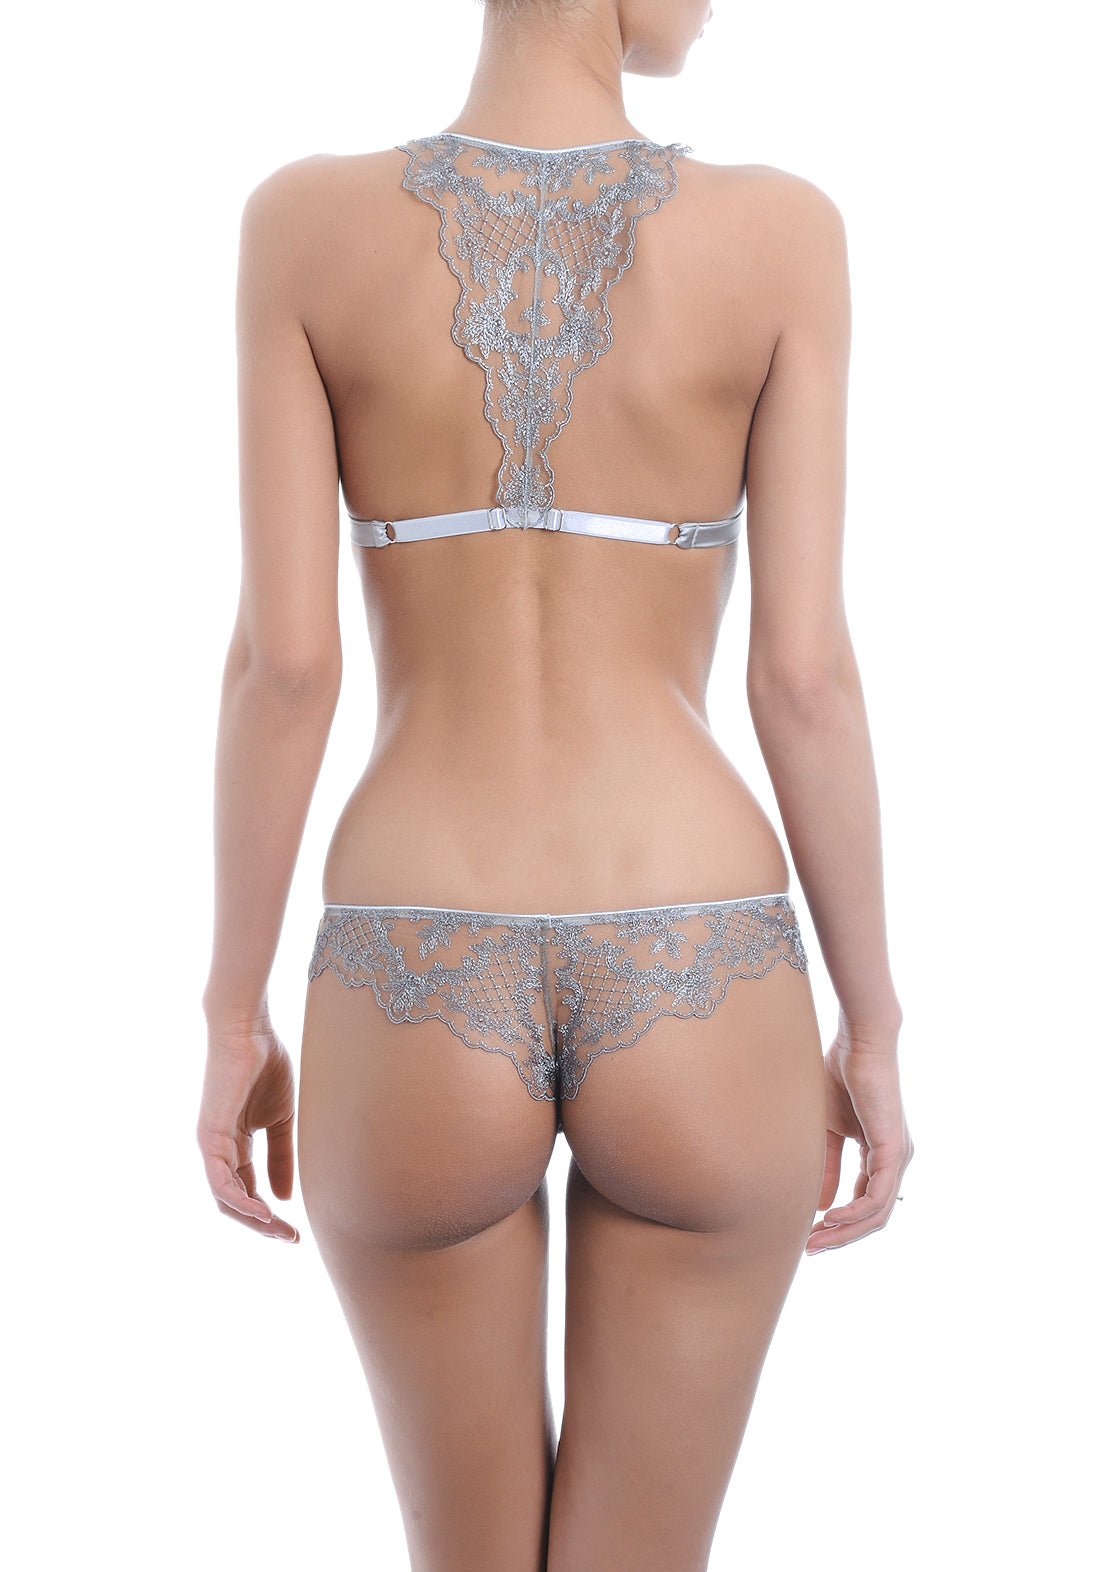 Accord Privé Panty String in Silver